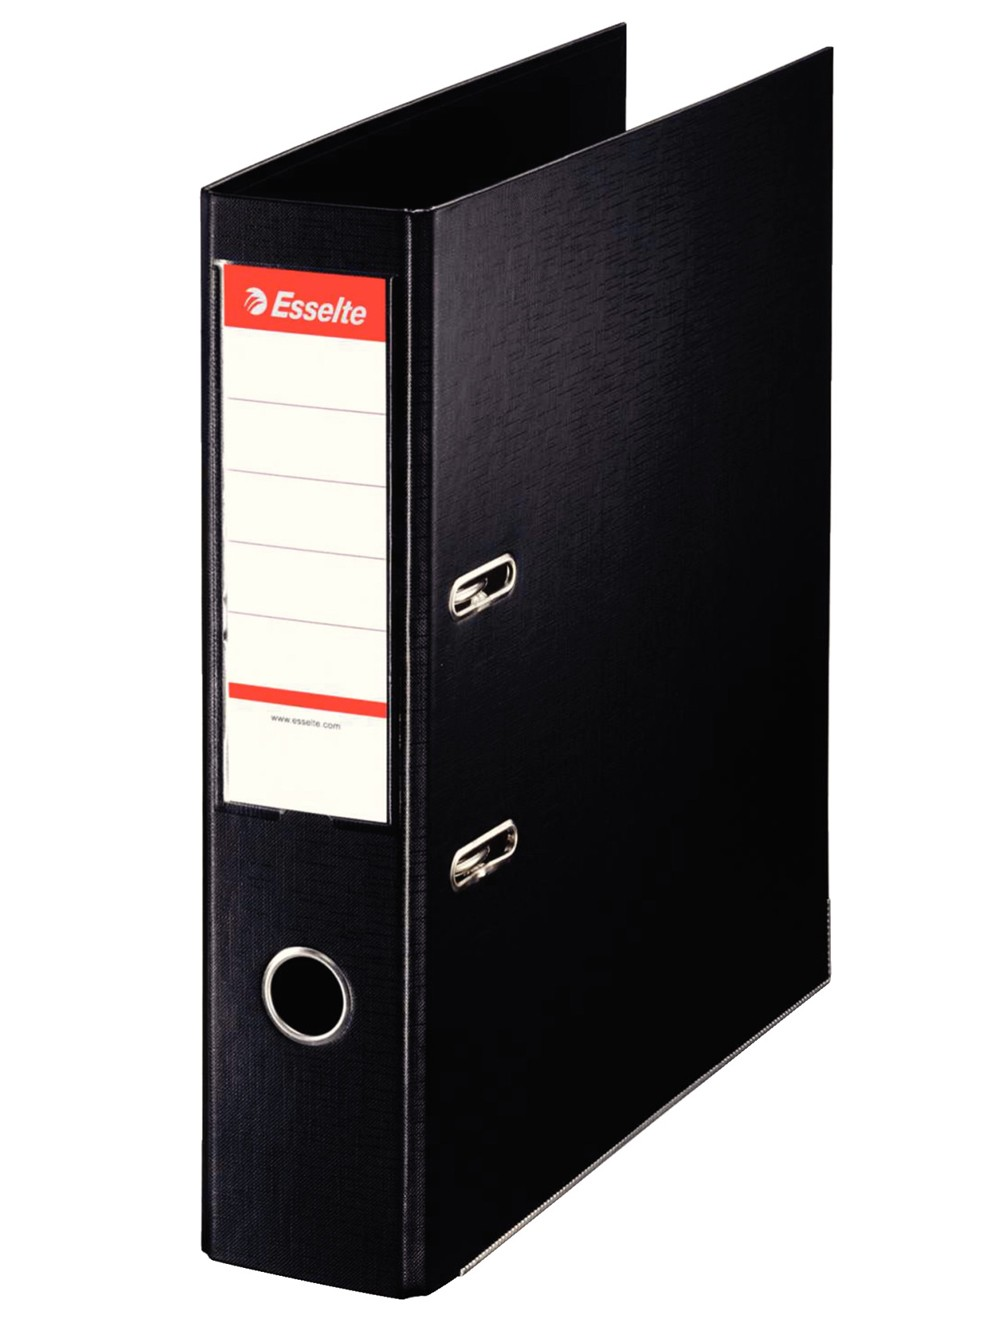 ESSELTE PP LEVER ARCH FILE - 70MM